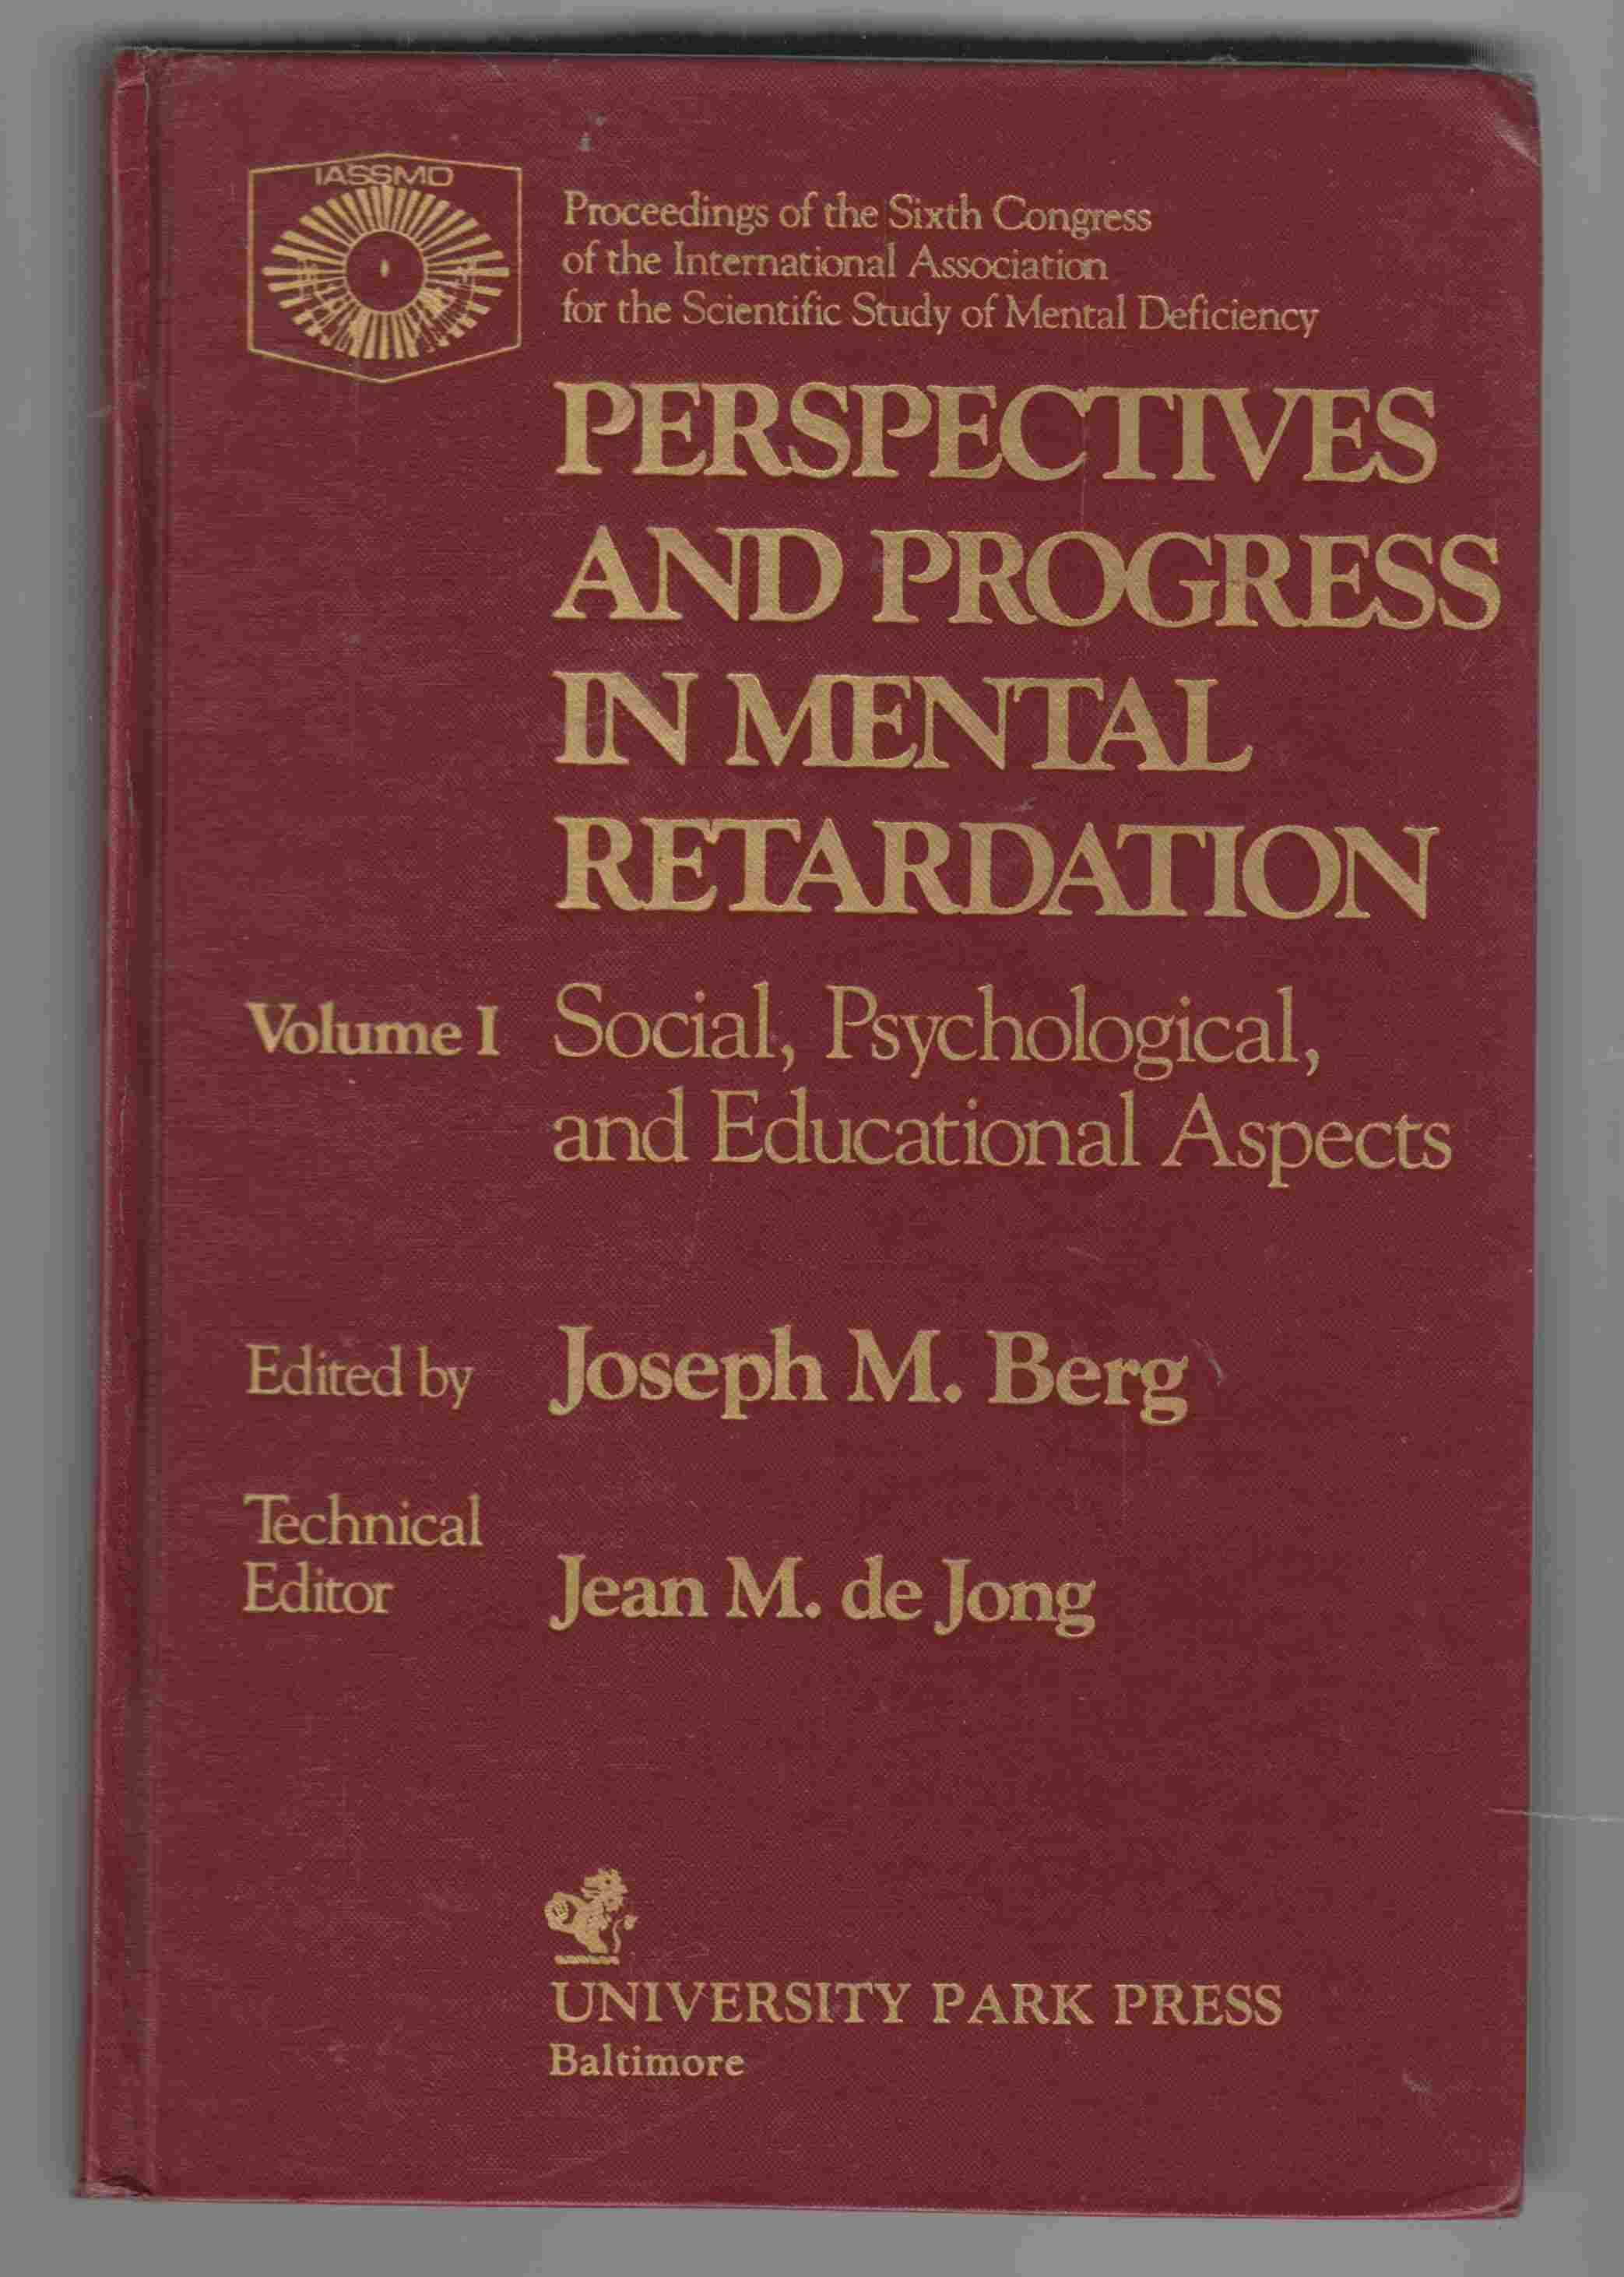 Image for Perspectives and Progress in Mental Retardation: Volume I Social, Psychological, and Educational Aspects